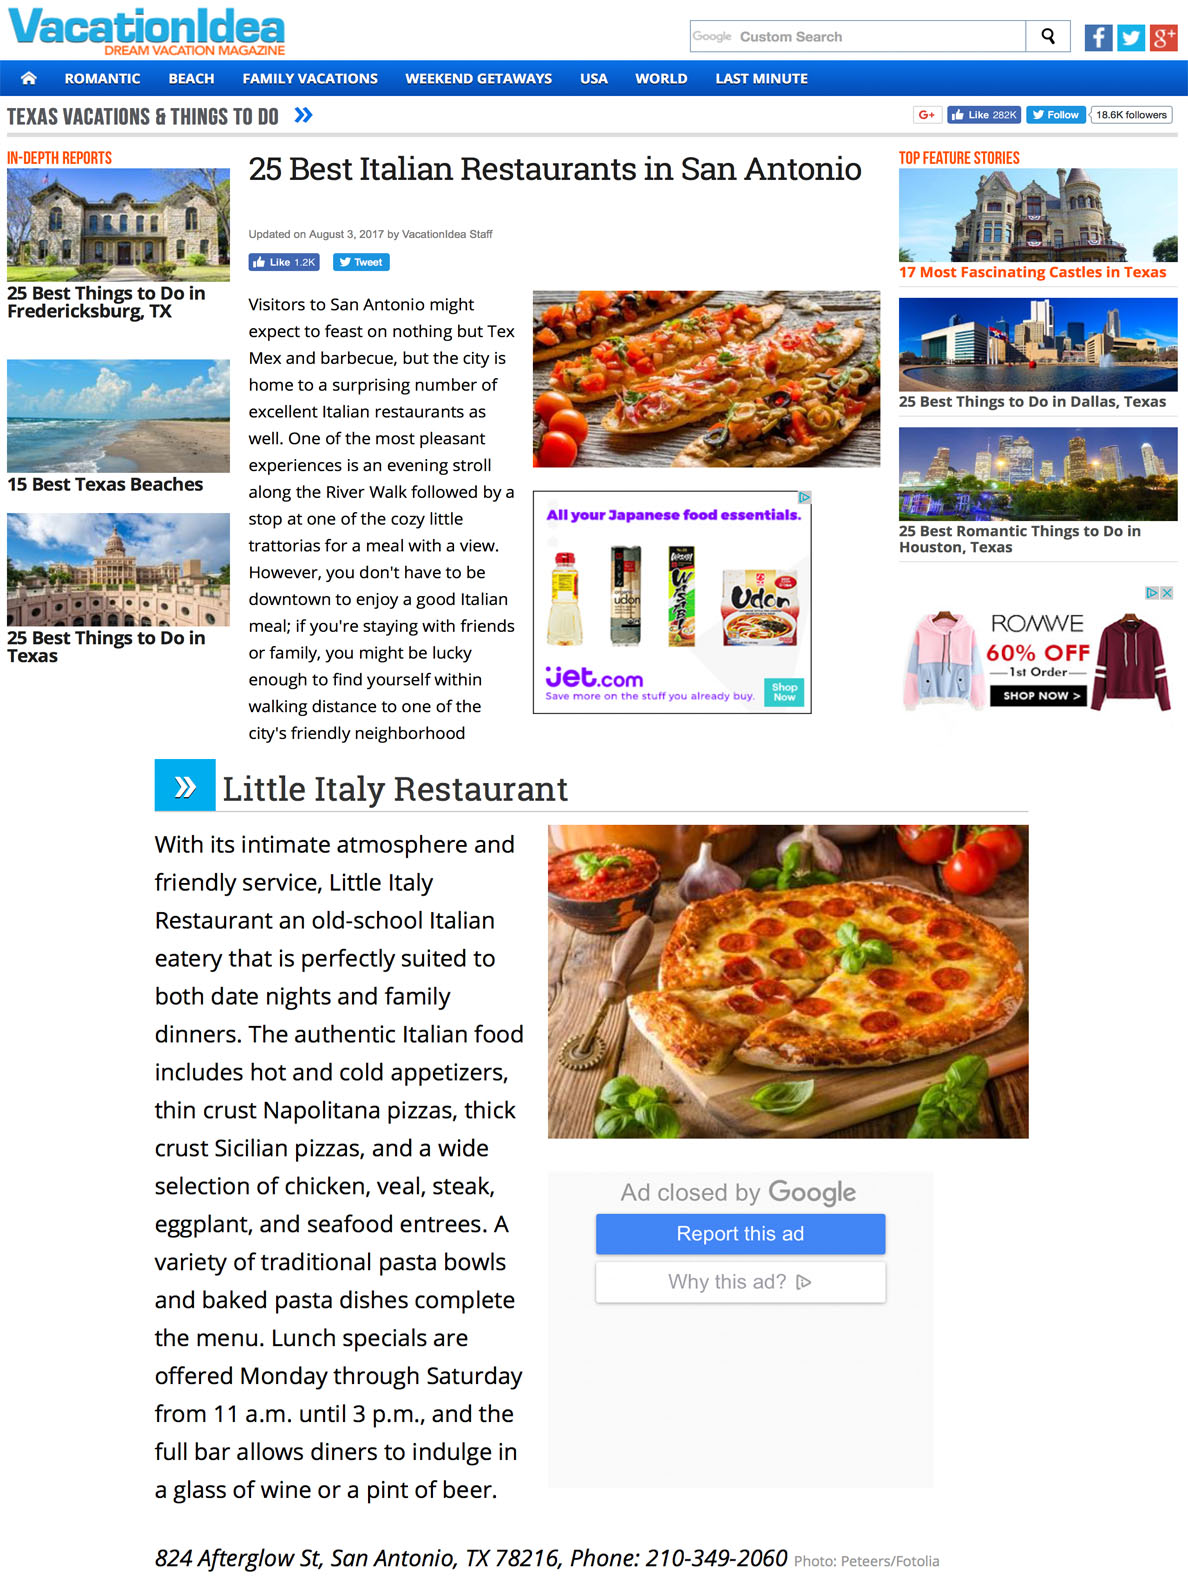 25 Best Italian Restaurants In San Antonio Little Italy Restaurant Pizzeria